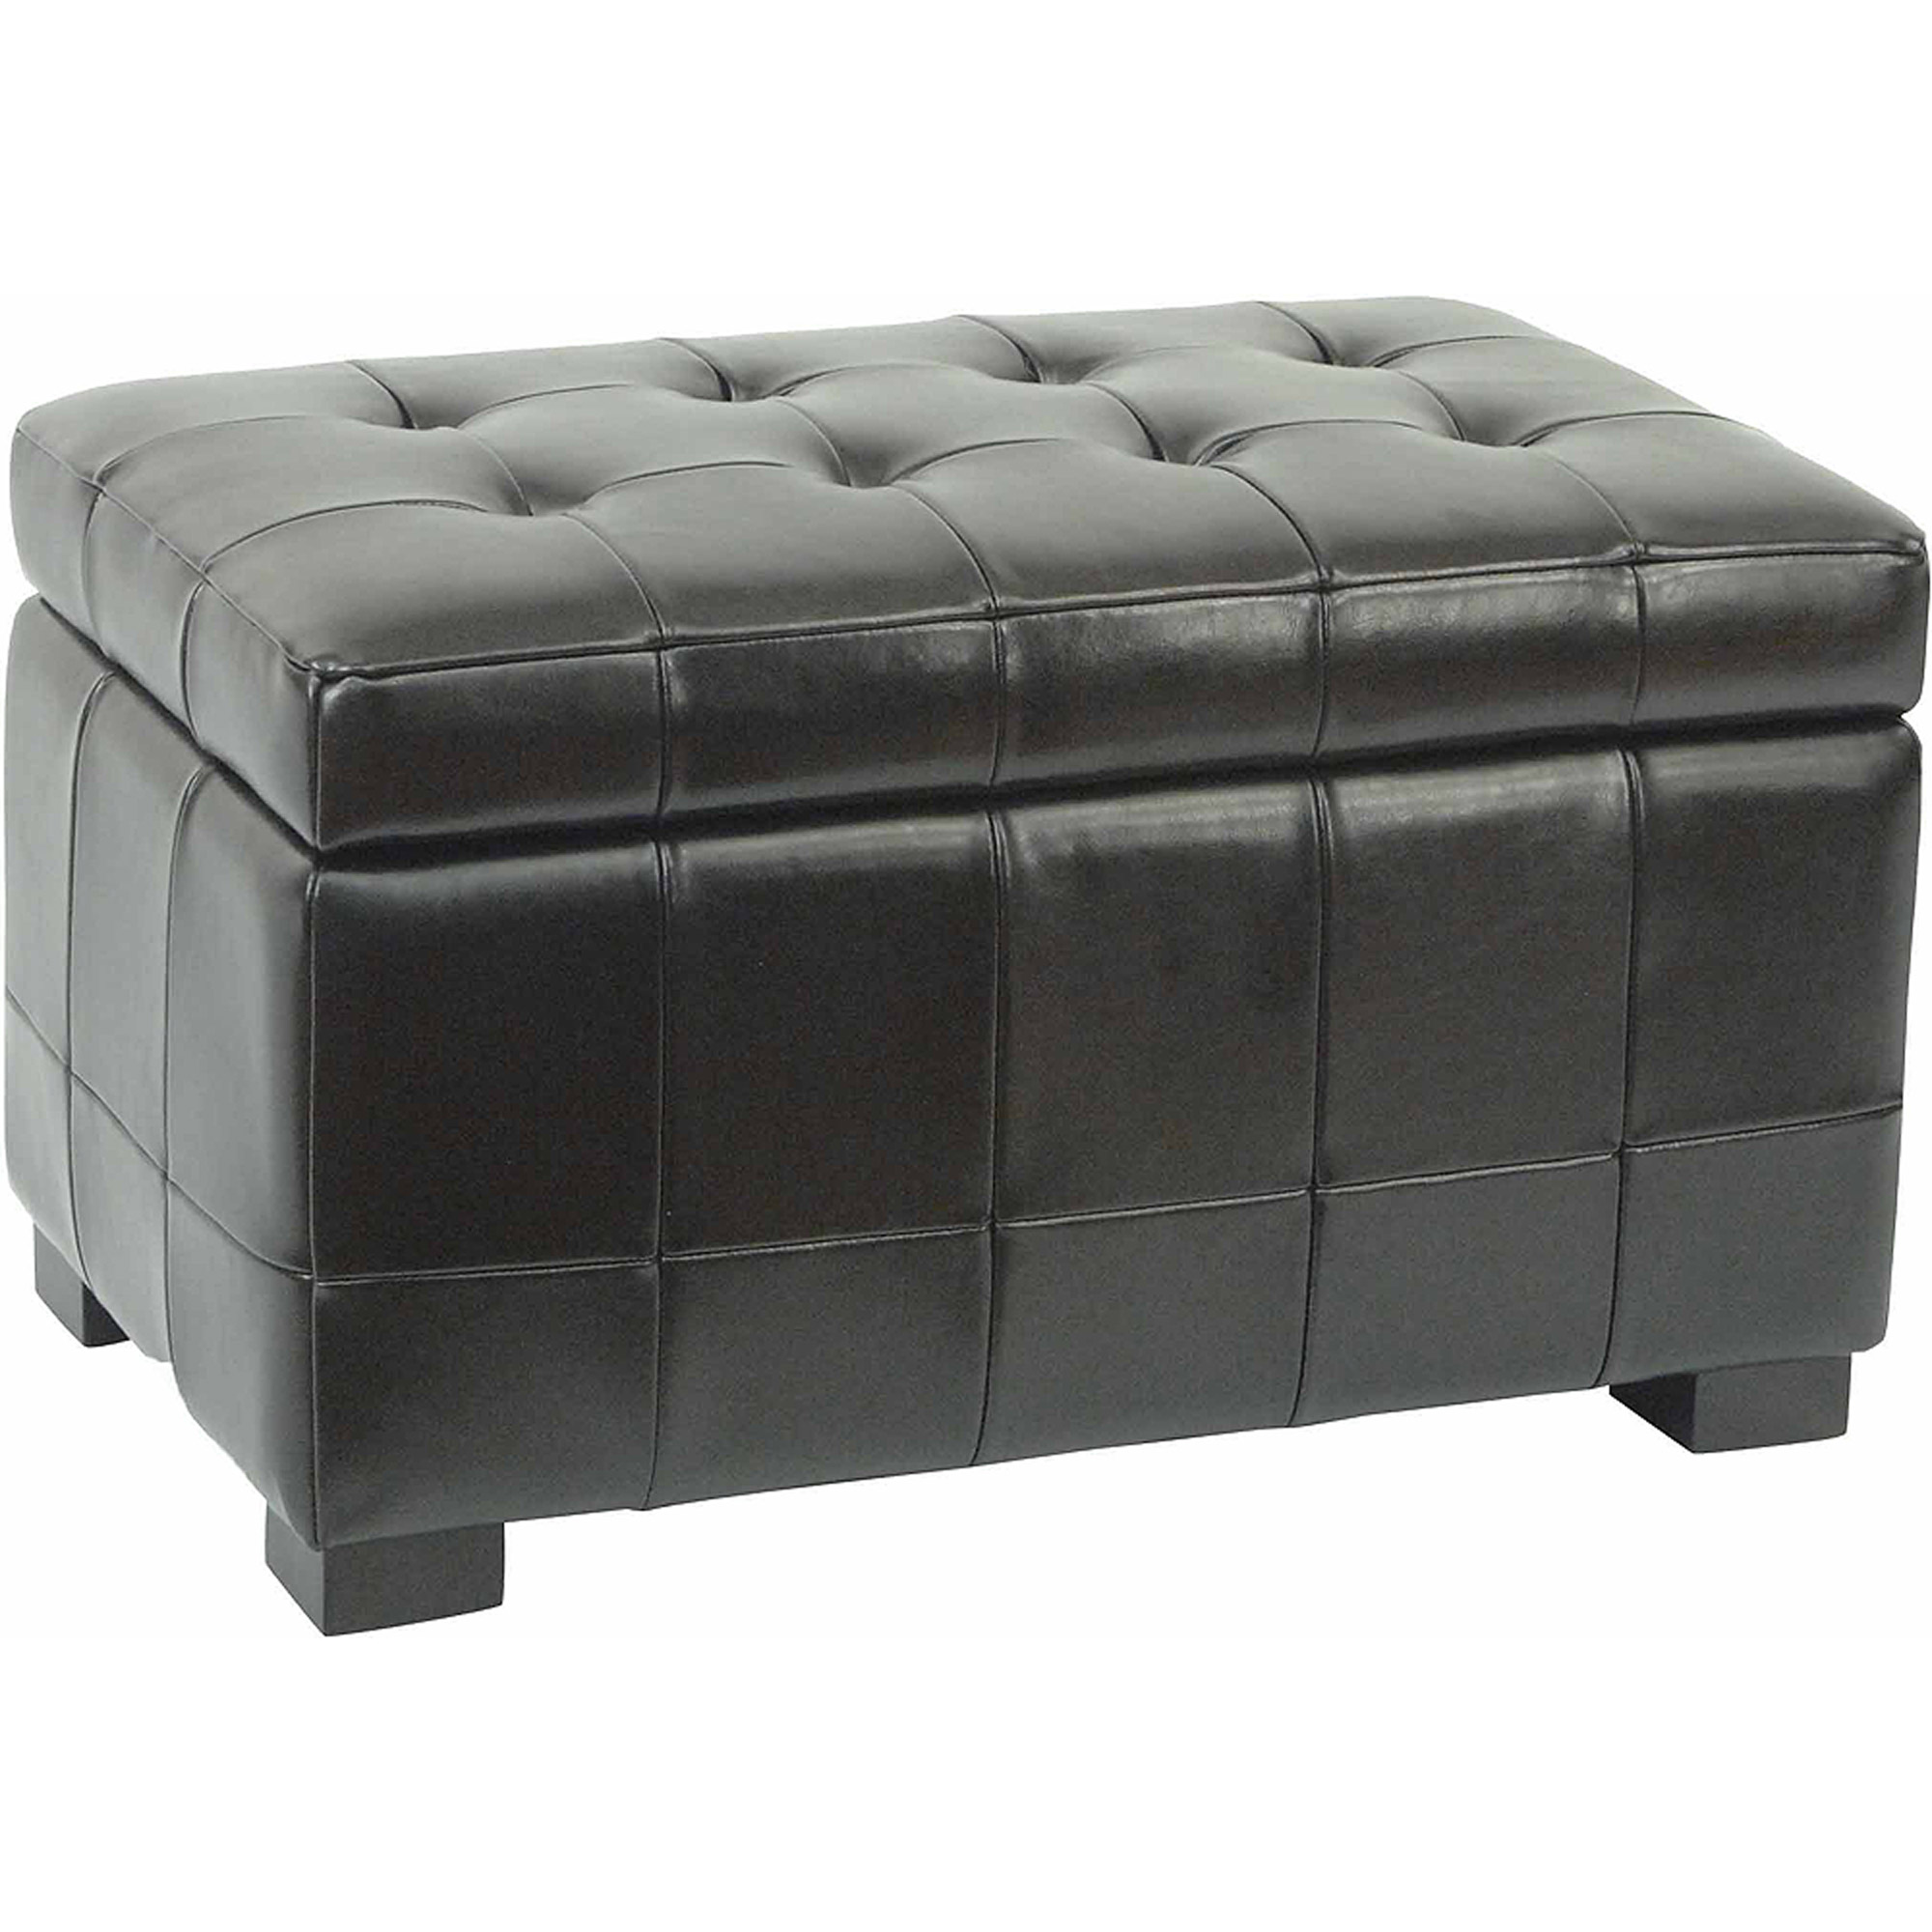 Safavieh Small Manhattan Beechwood Bicast Leather Upholstered Storage Bench, Multiple Colors